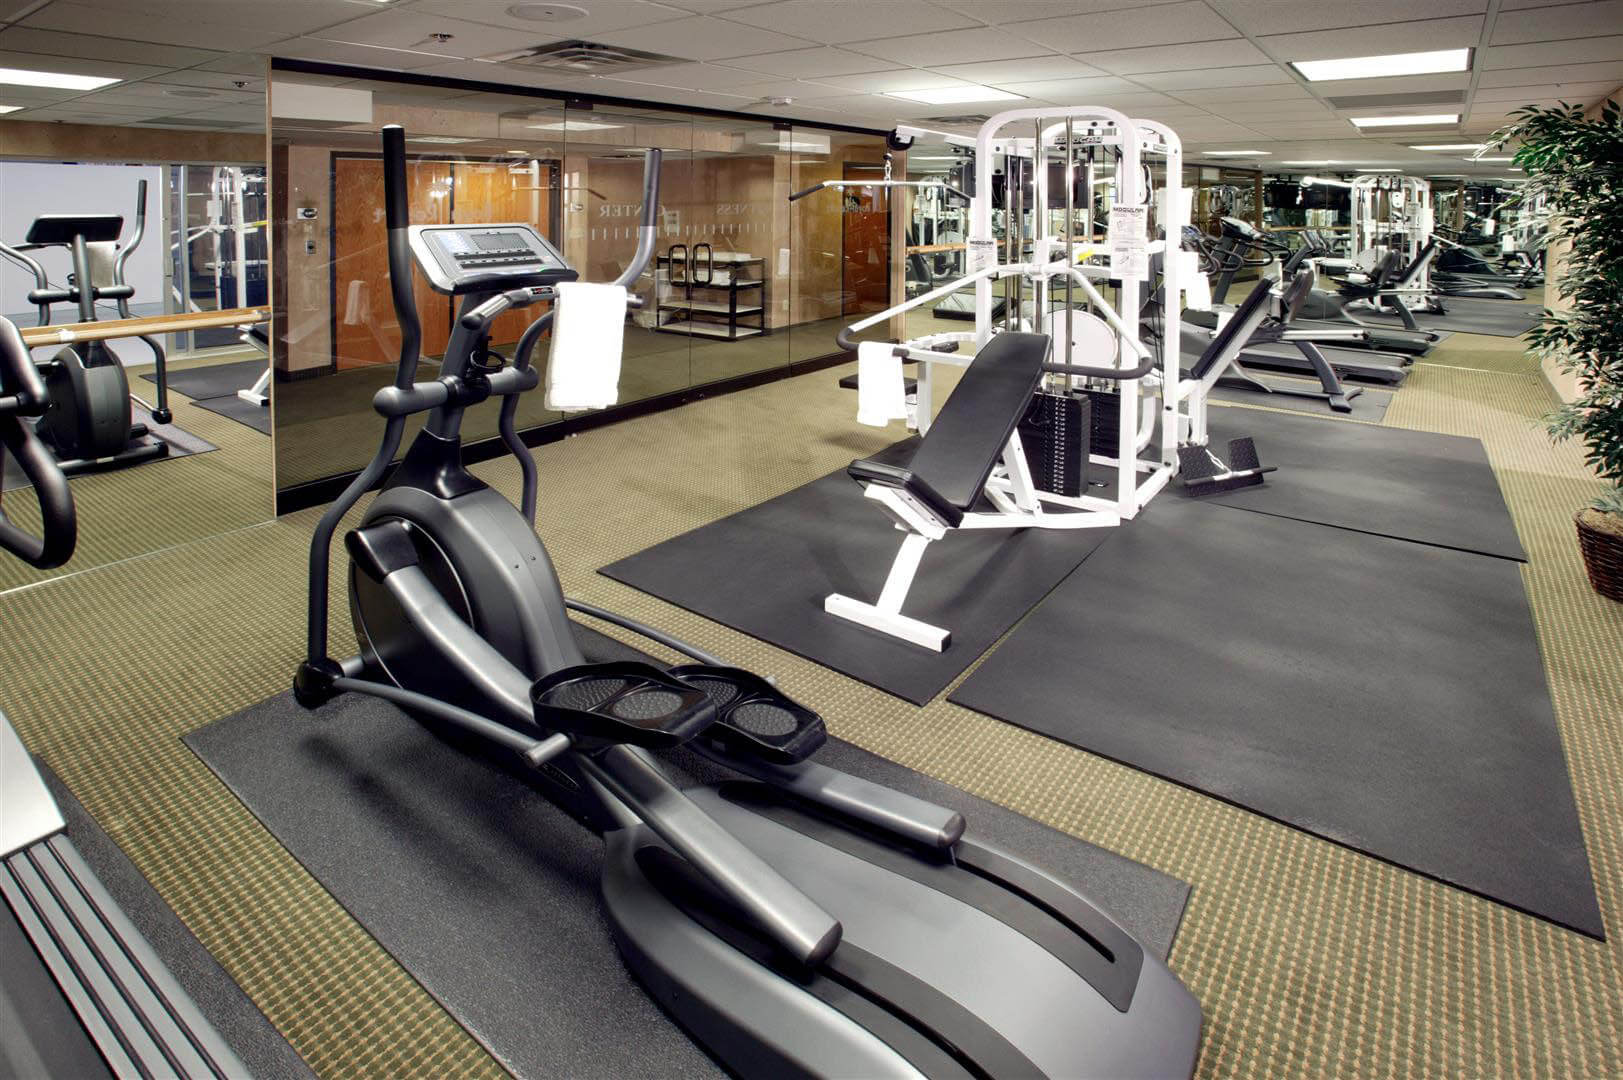 Royal Vacation Suites Gym